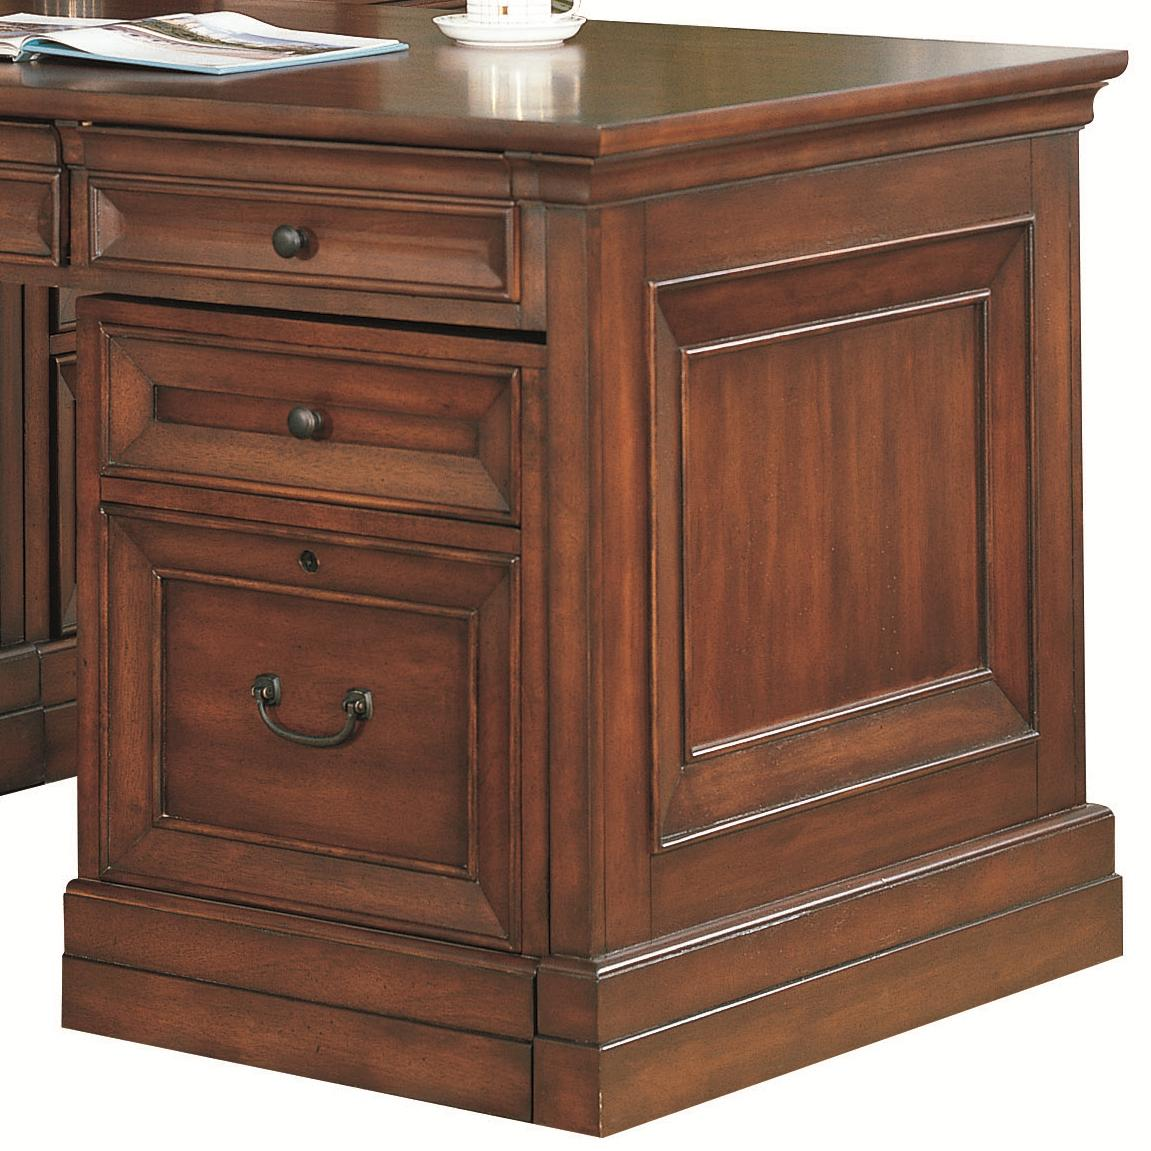 Aspenhome richmond drawer unit with locking file